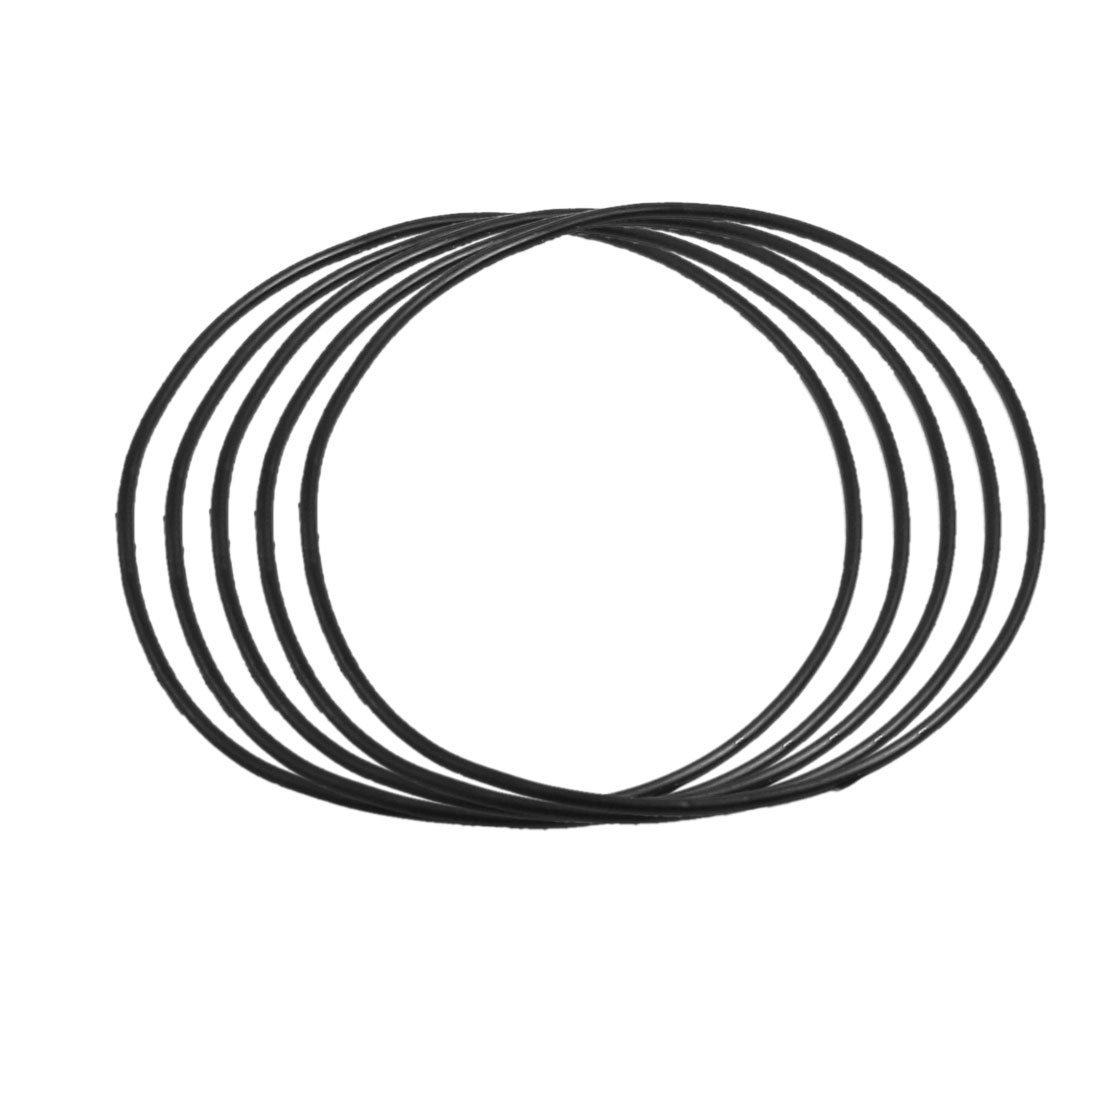 5 Pcs 103mm x 2.65mm Black Silicone O Rings Oil Seals Gaskets